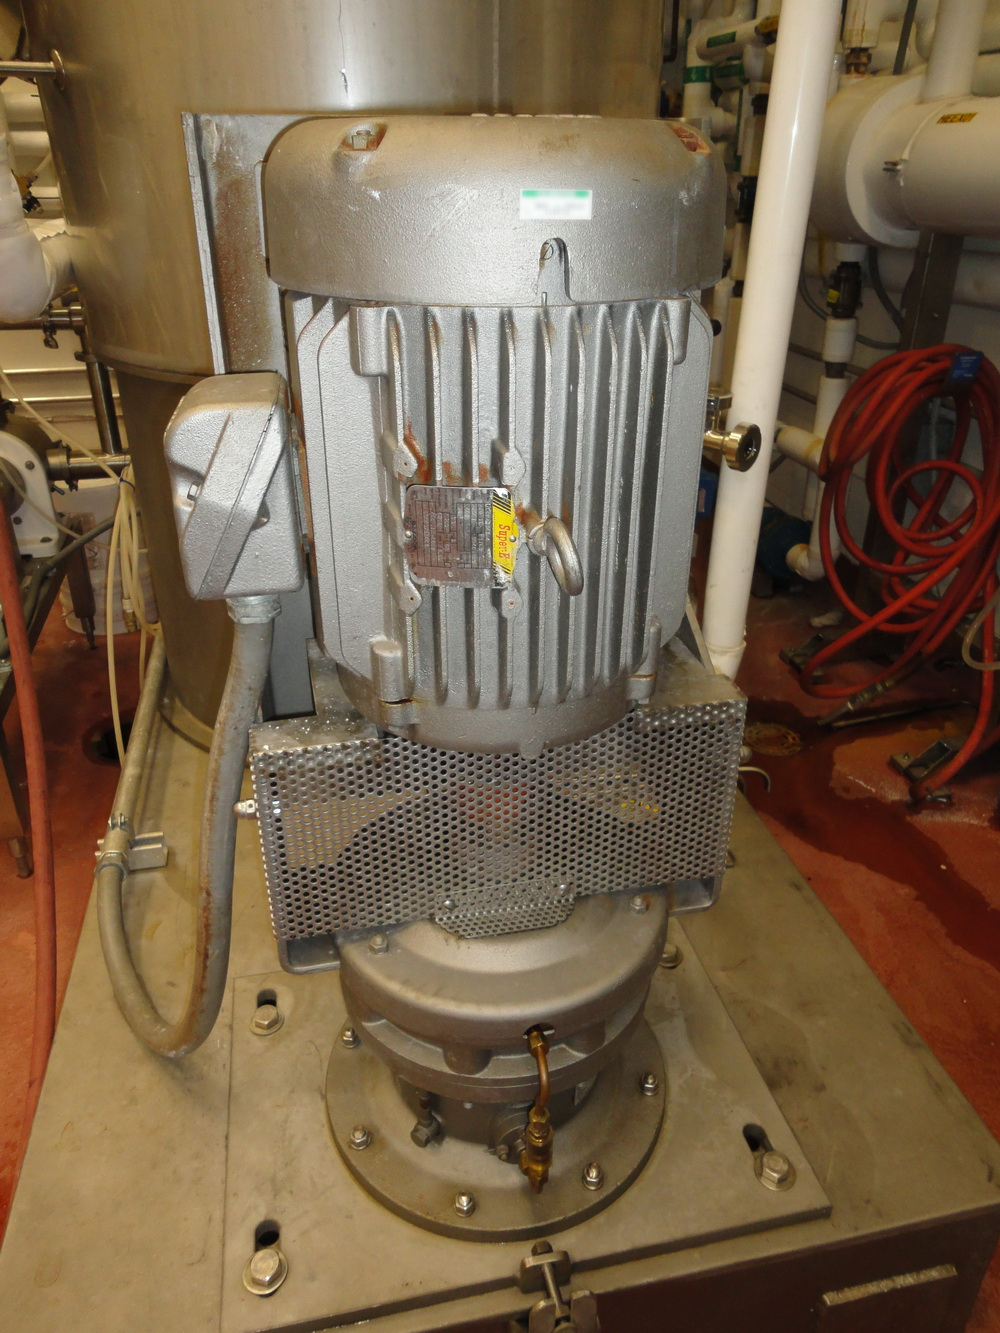 Vertical 1500 Liter/400 gallon SS Jacketed Vacuum Process Tank - Image 3 of 13